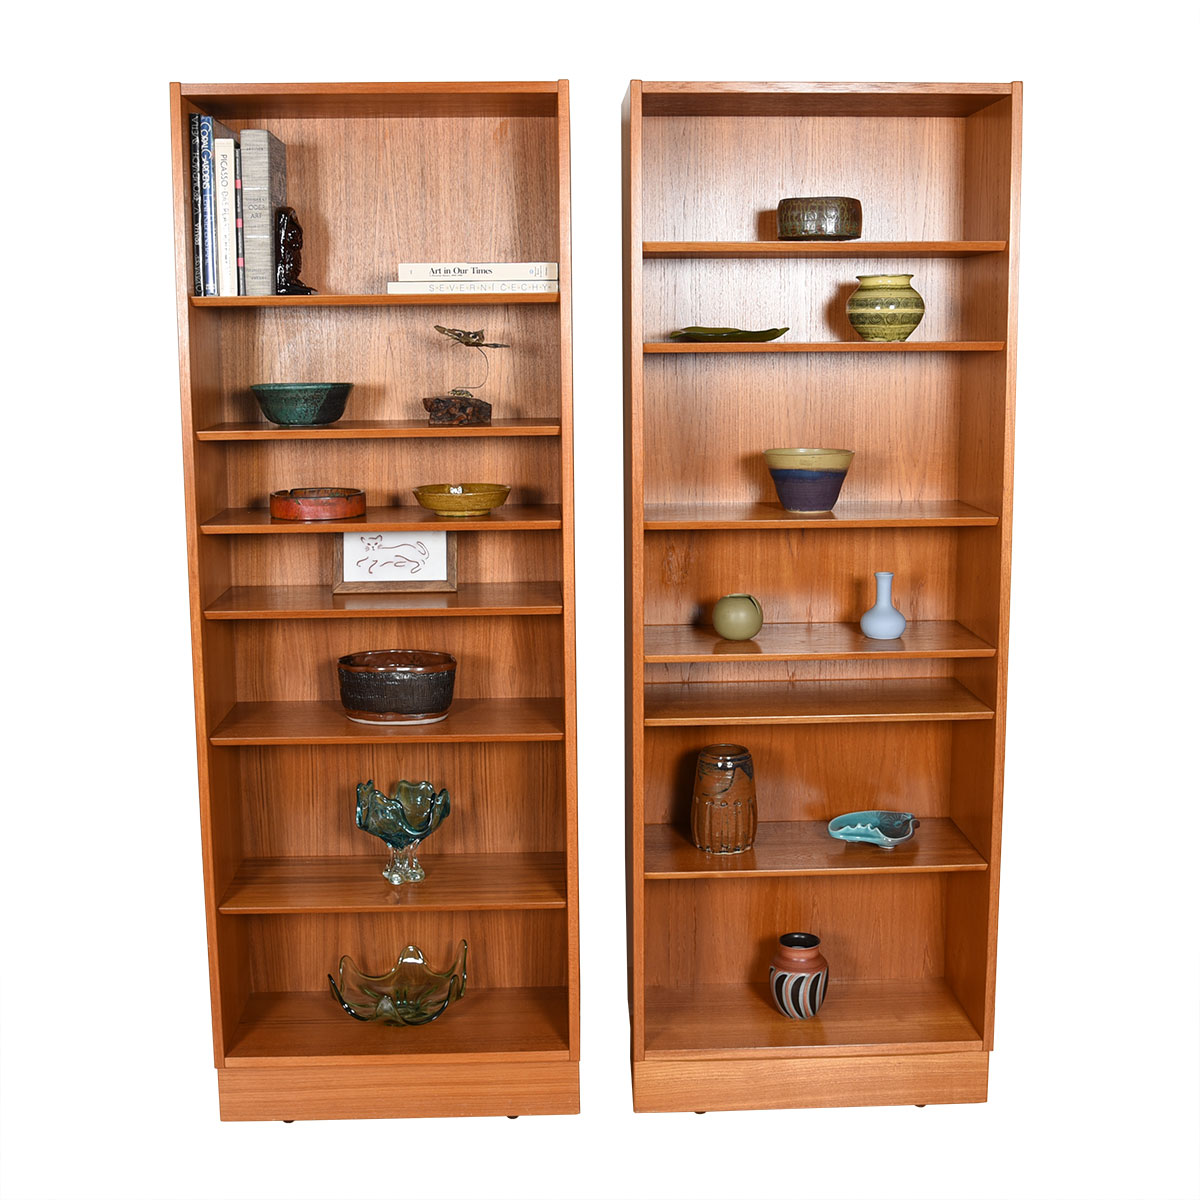 Pair of Teak 28″ Compact Adjustable Shelf Bookcases